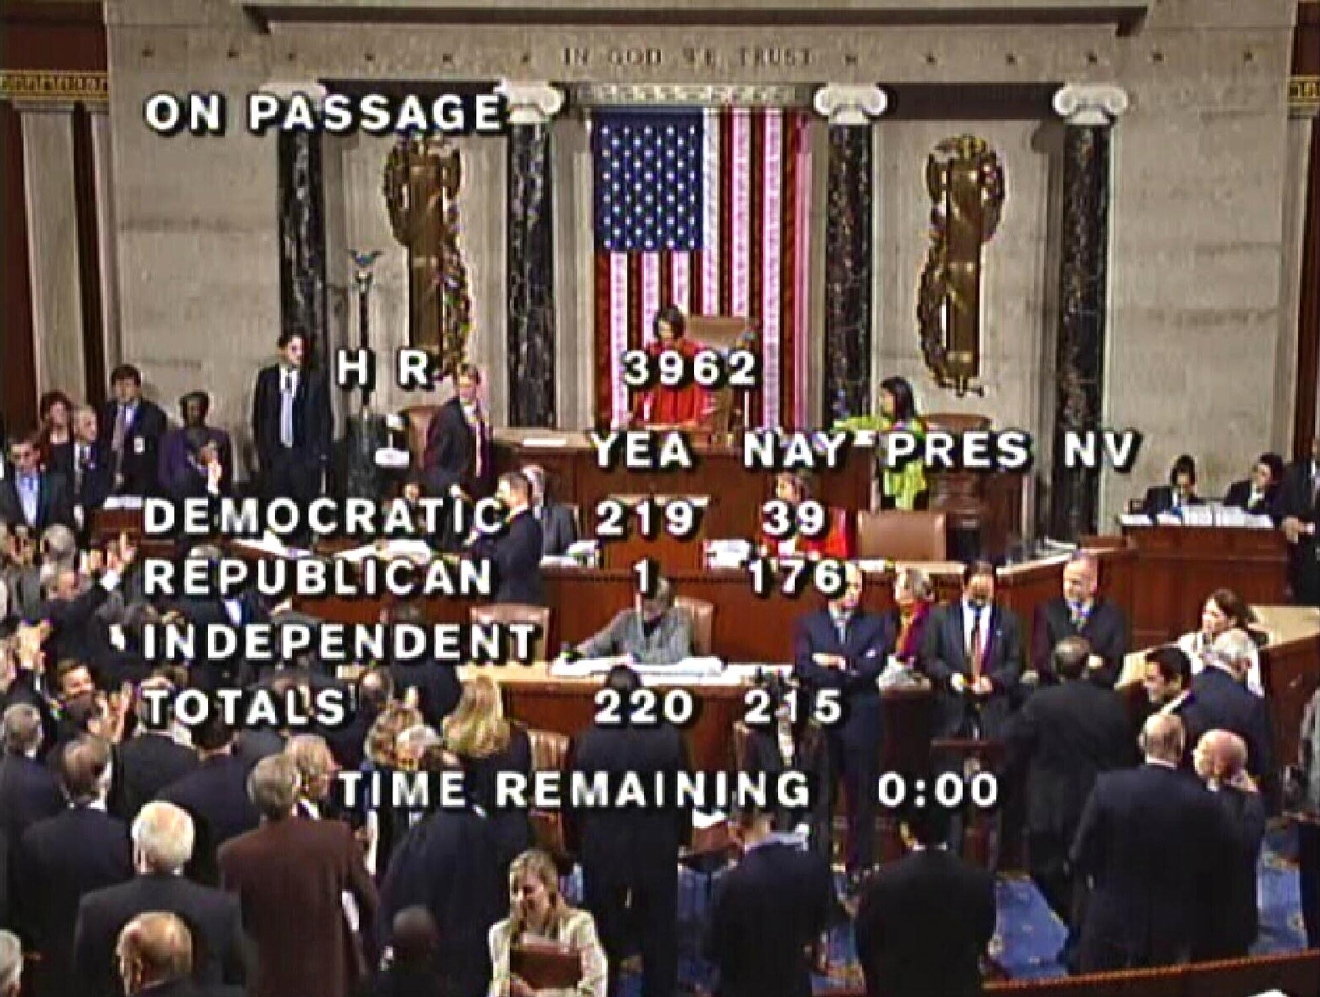 FILE - This Saturday, Nov. 7, 2009 image made from video shows the final vote for health care bill 3962 in the House Chamber of the U.S. Capitol in Washington. After years of debating health care politics and policies, Americans remain divided over the Affordable Care Act, which was passed without a single Republican vote when Democrats still controlled both houses of Congress. (AP Photo/Pool)